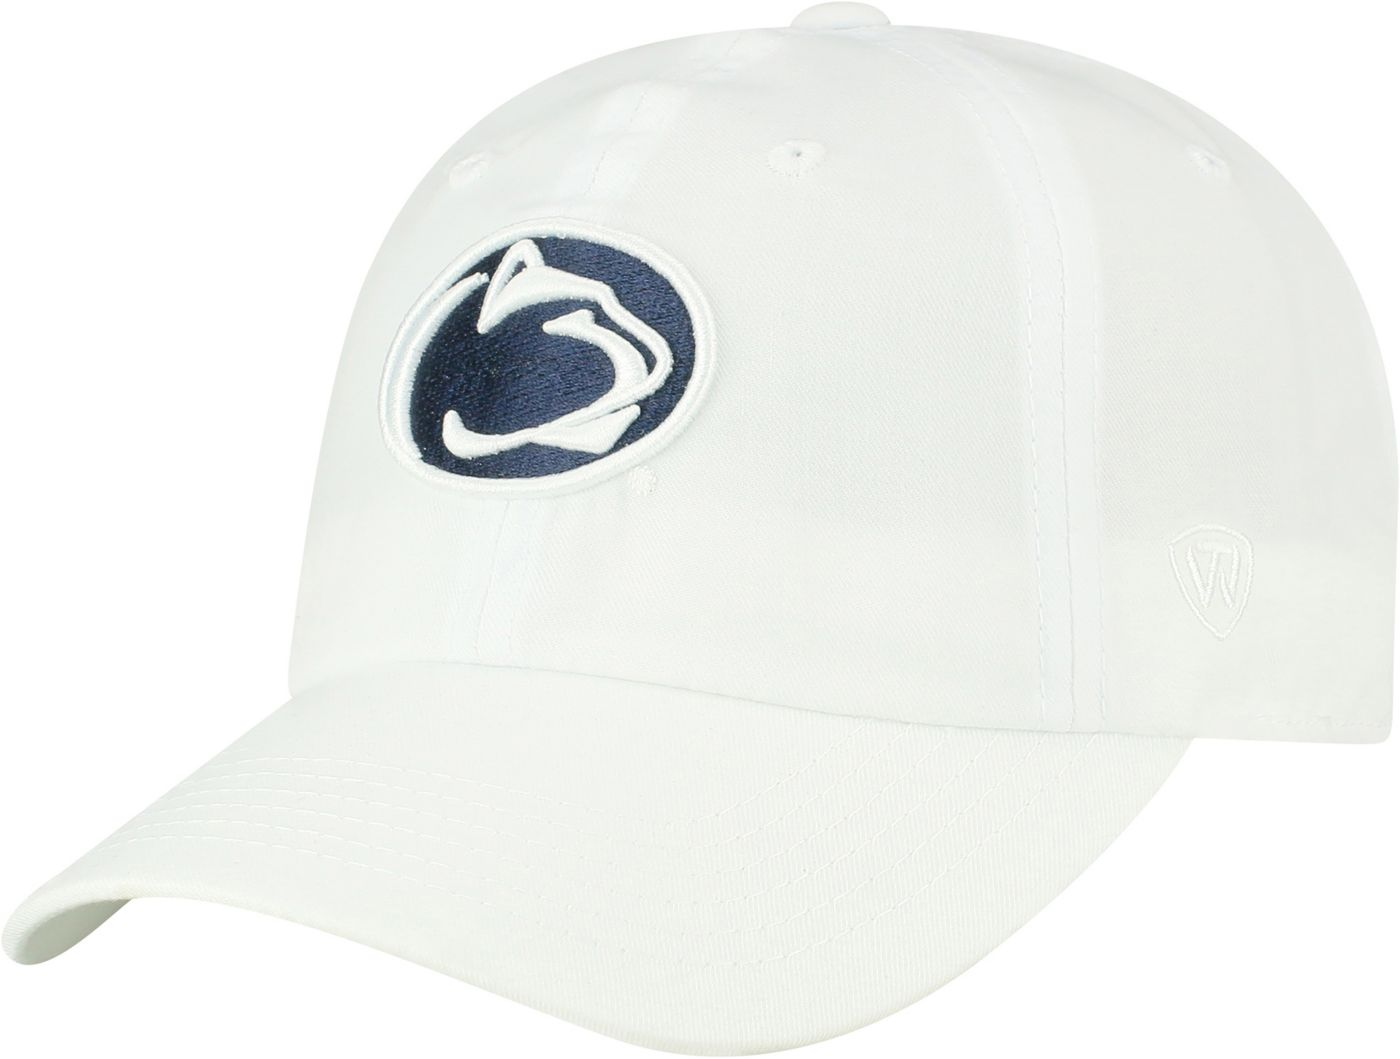 Top of the World Men's Penn State Nittany Lions Staple Adjustable White Hat